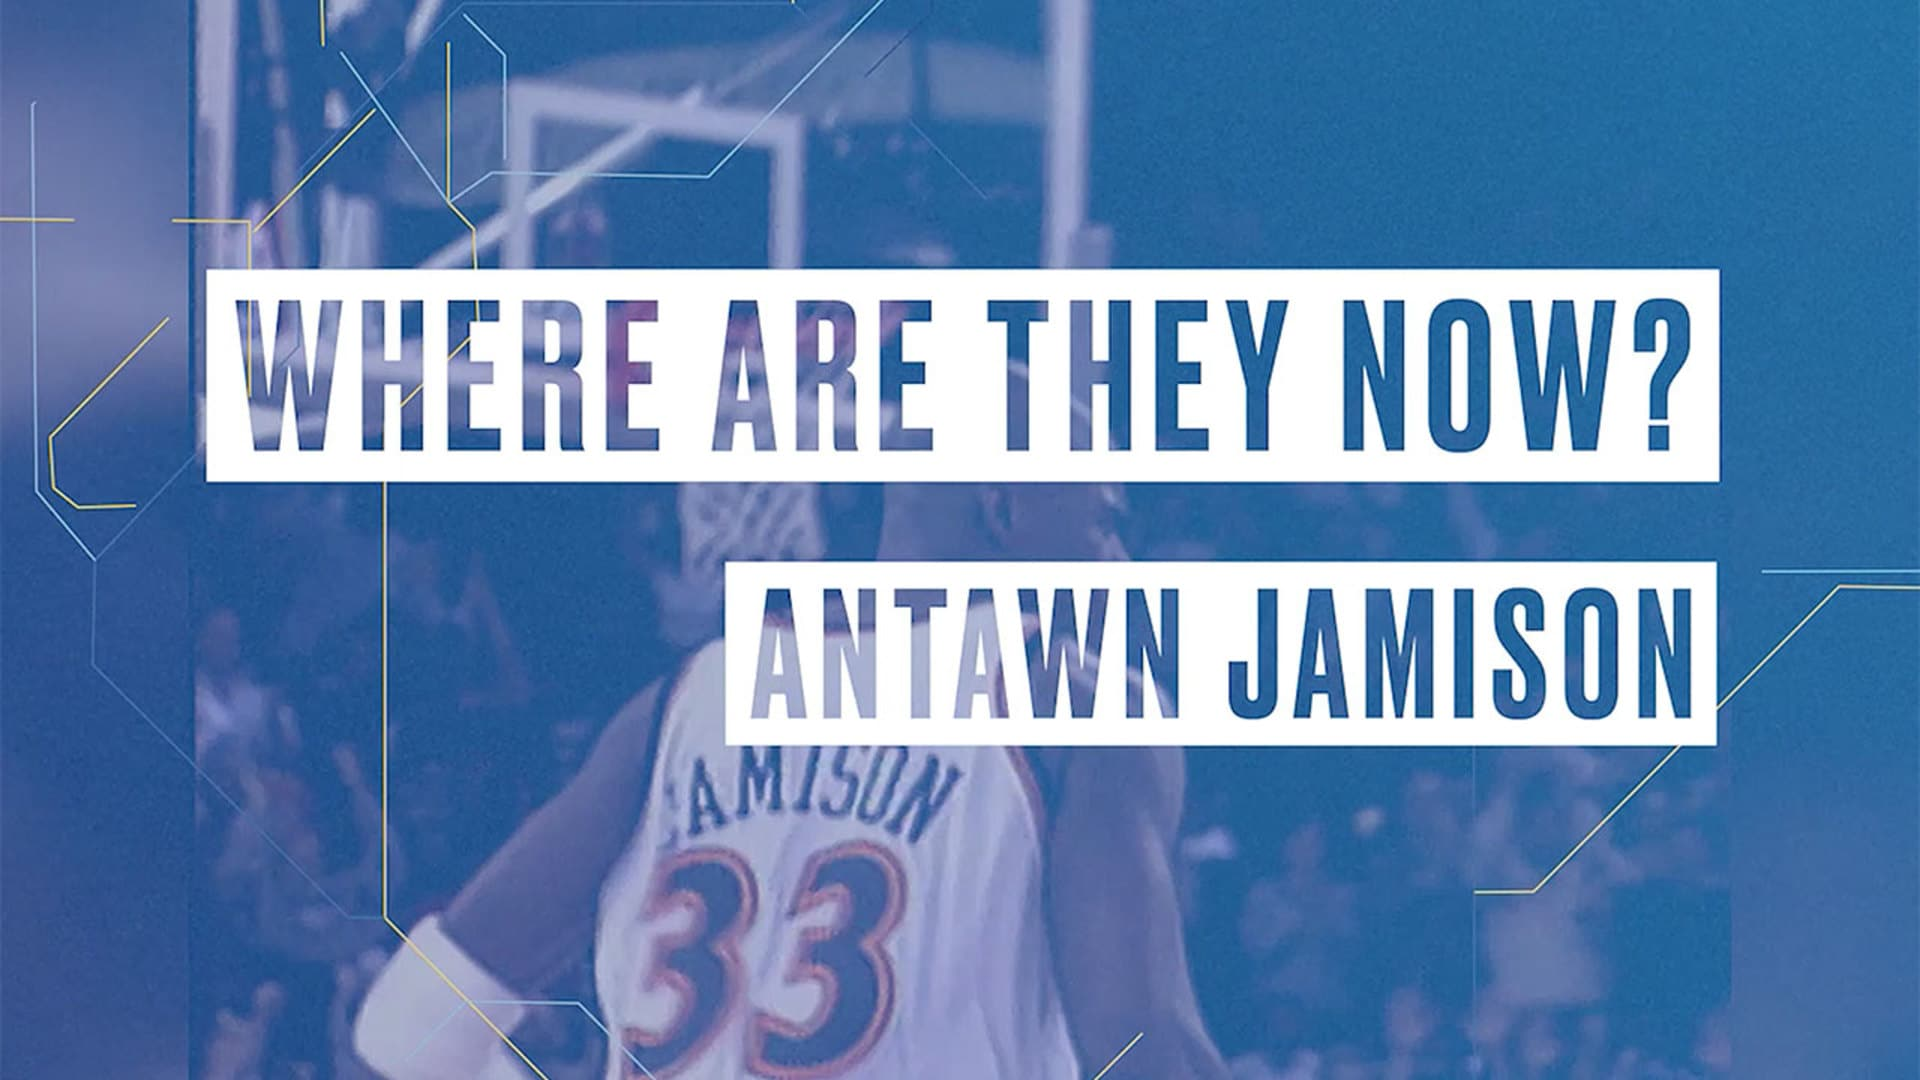 Where Are They Now featuring Antawn Jamison